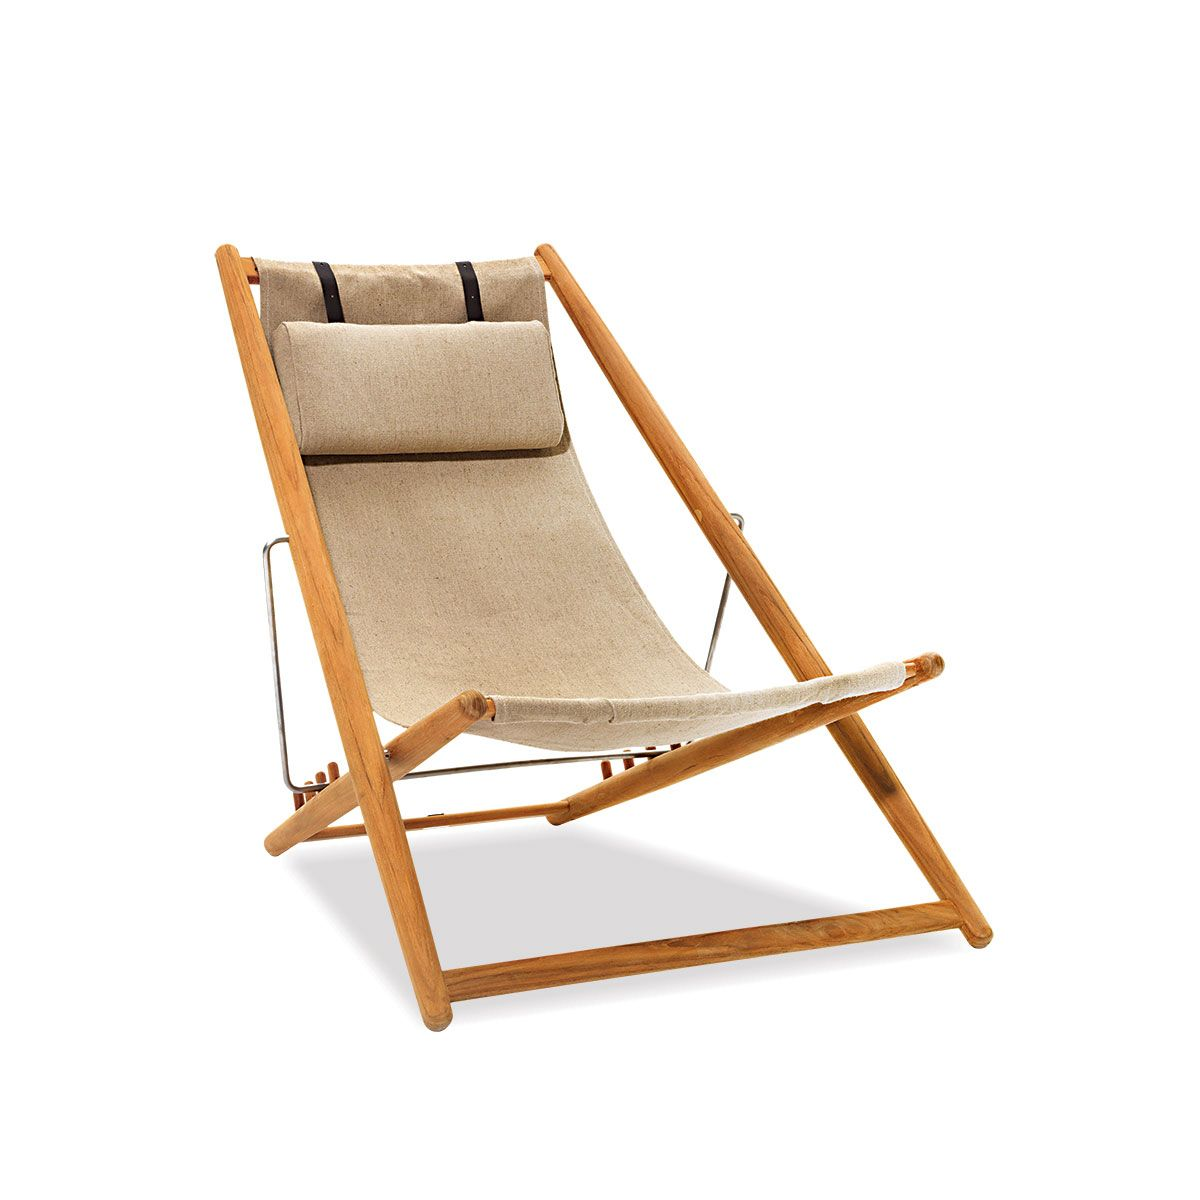 Teak Adjustable Outdoor Sling Chair In Natural Ihland Collection Outdoor Chairs Deck Chairs Folding Lounge Chair